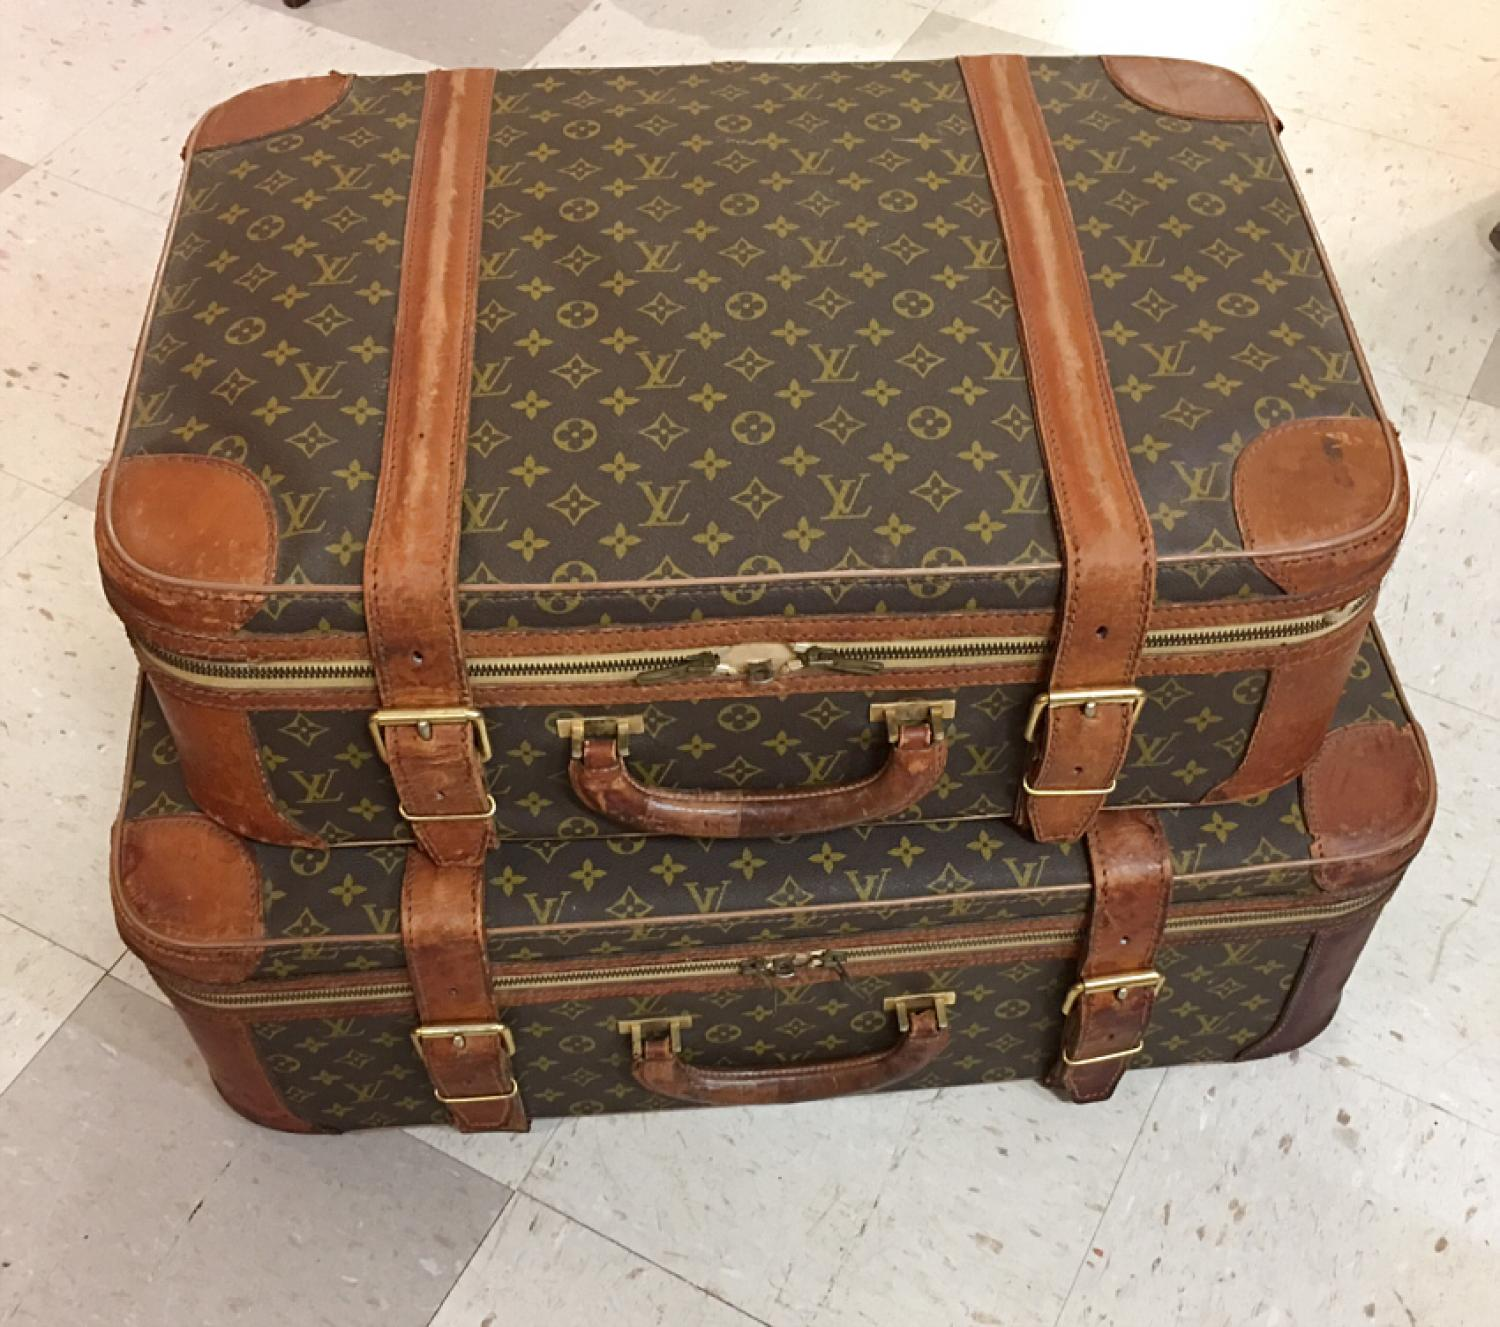 Pair of vintage Louis Vuitton valises